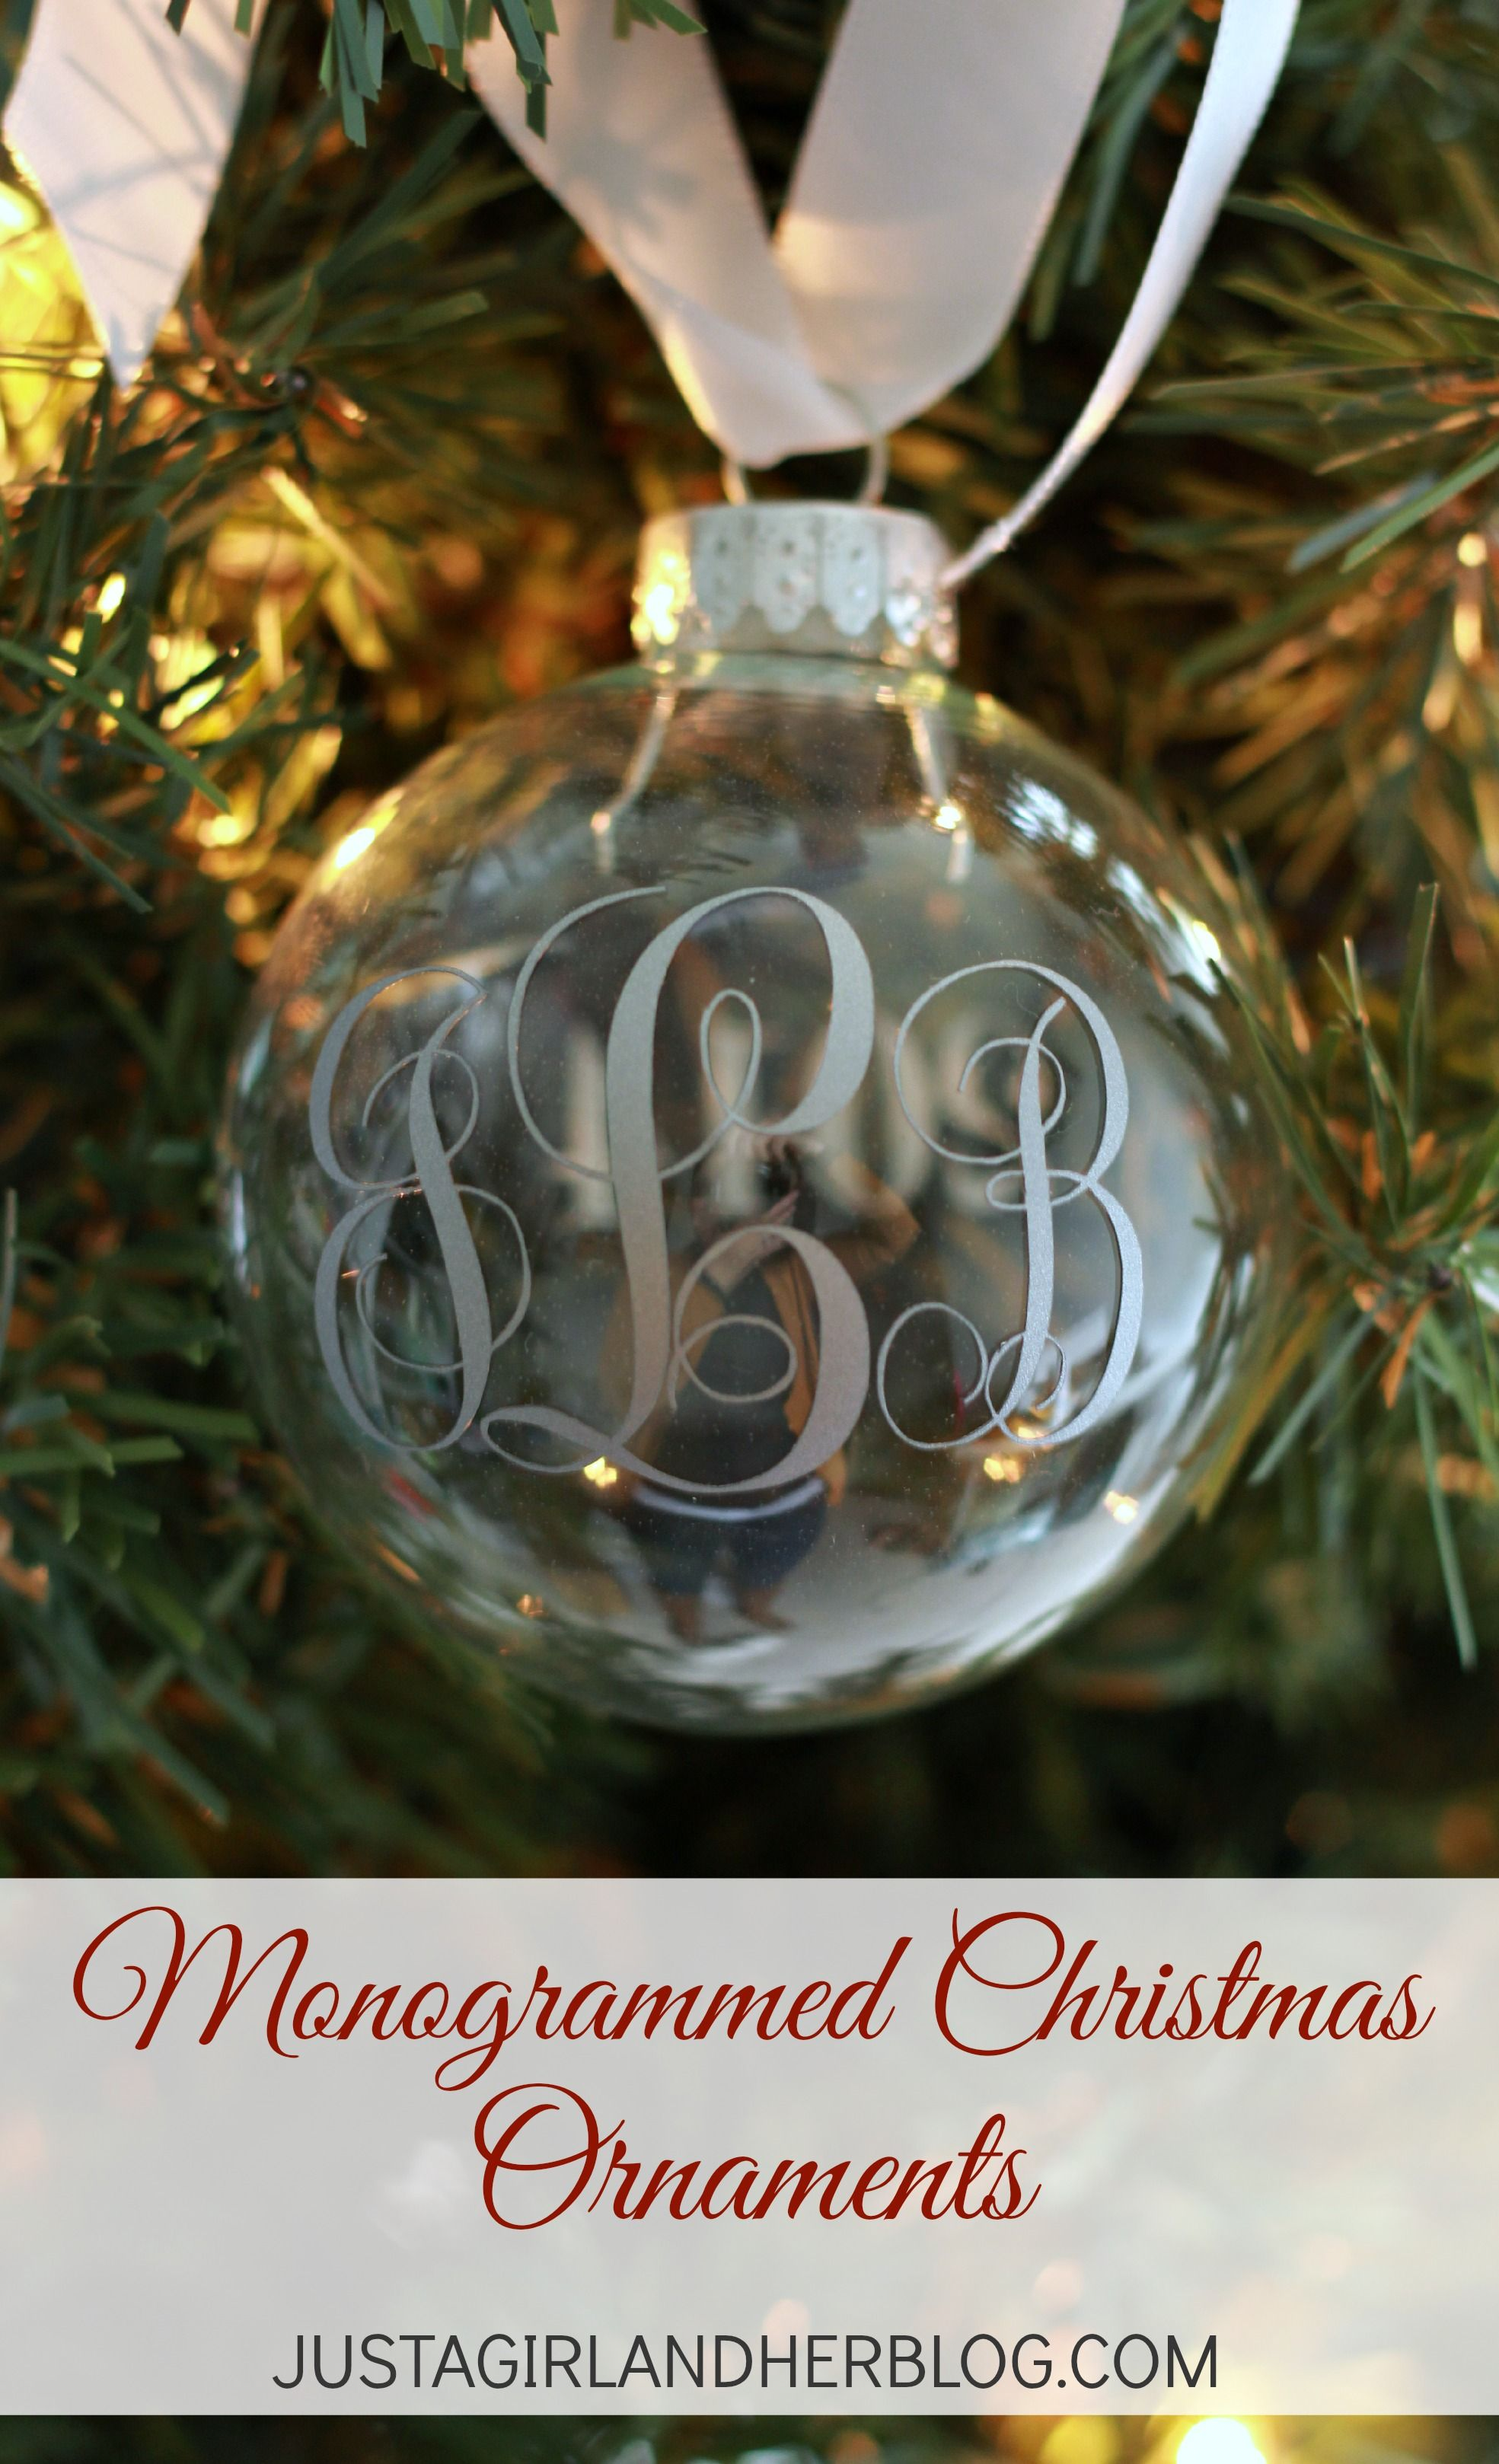 picture about Justagirlandherblog titled Monogrammed Xmas Ornaments Abby Lawson - Precisely a Lady